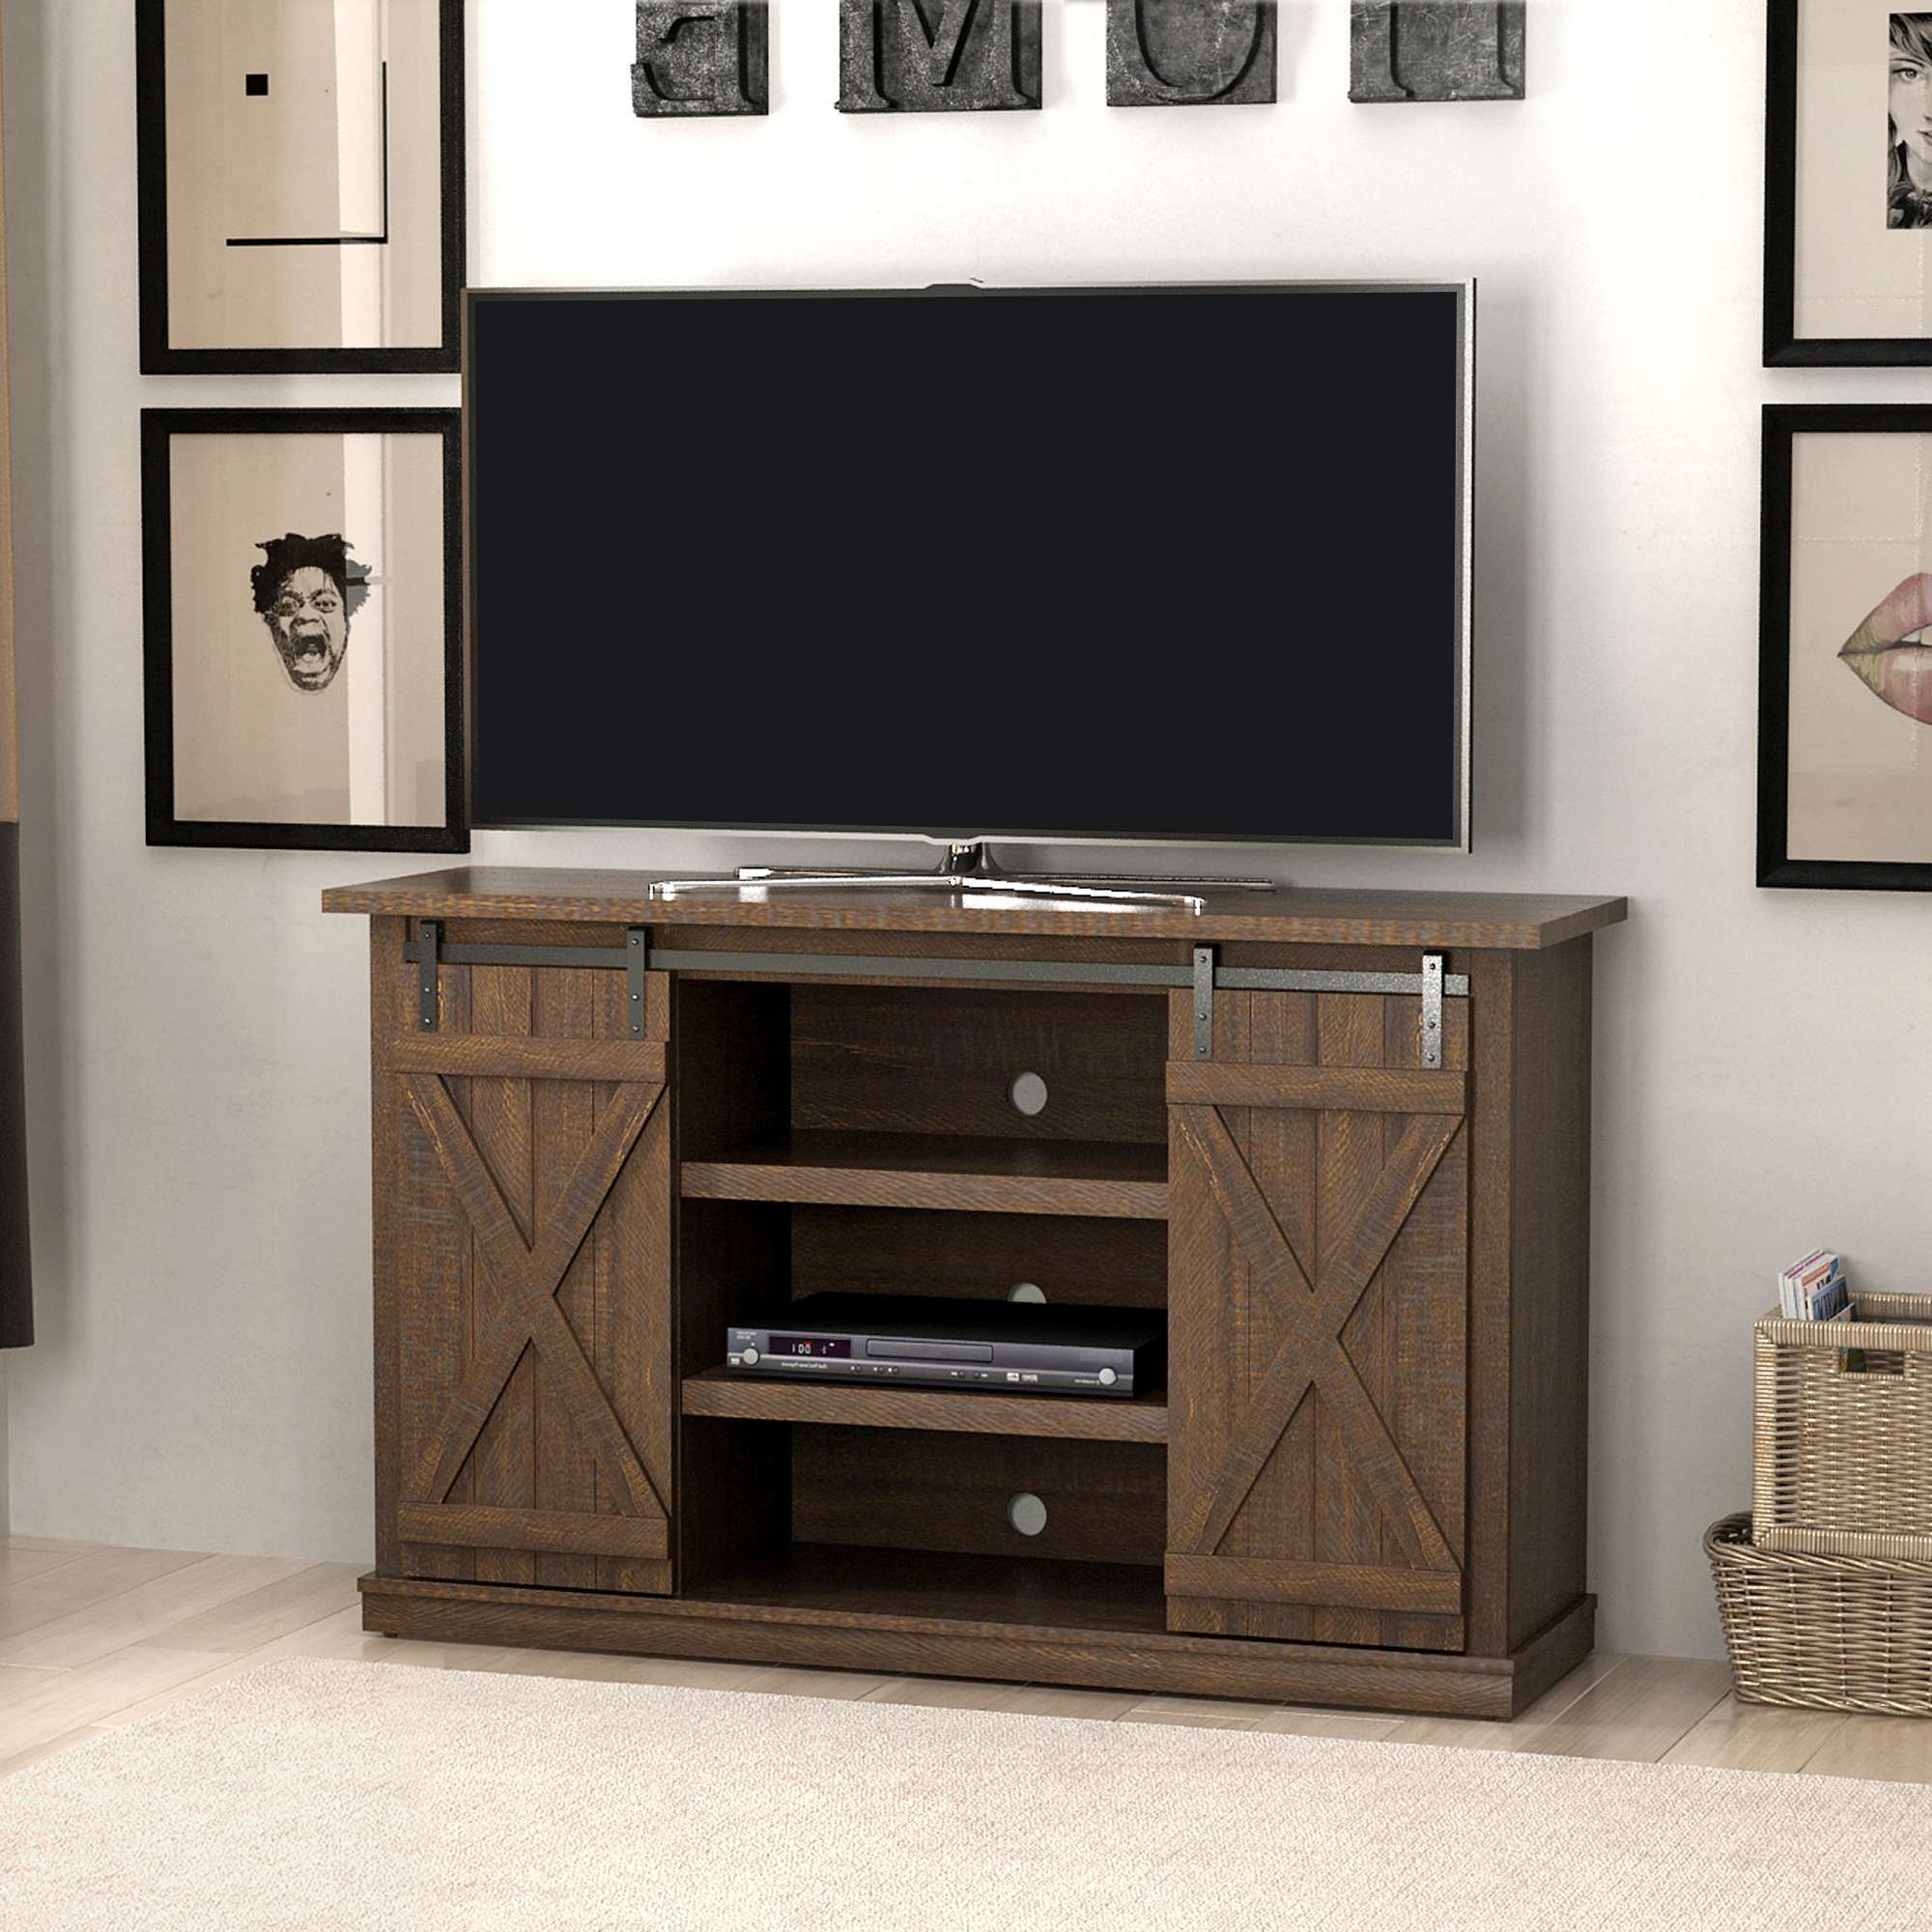 Tv Stands – Walmart Within Wooden Tv Stands For Flat Screens (View 11 of 15)